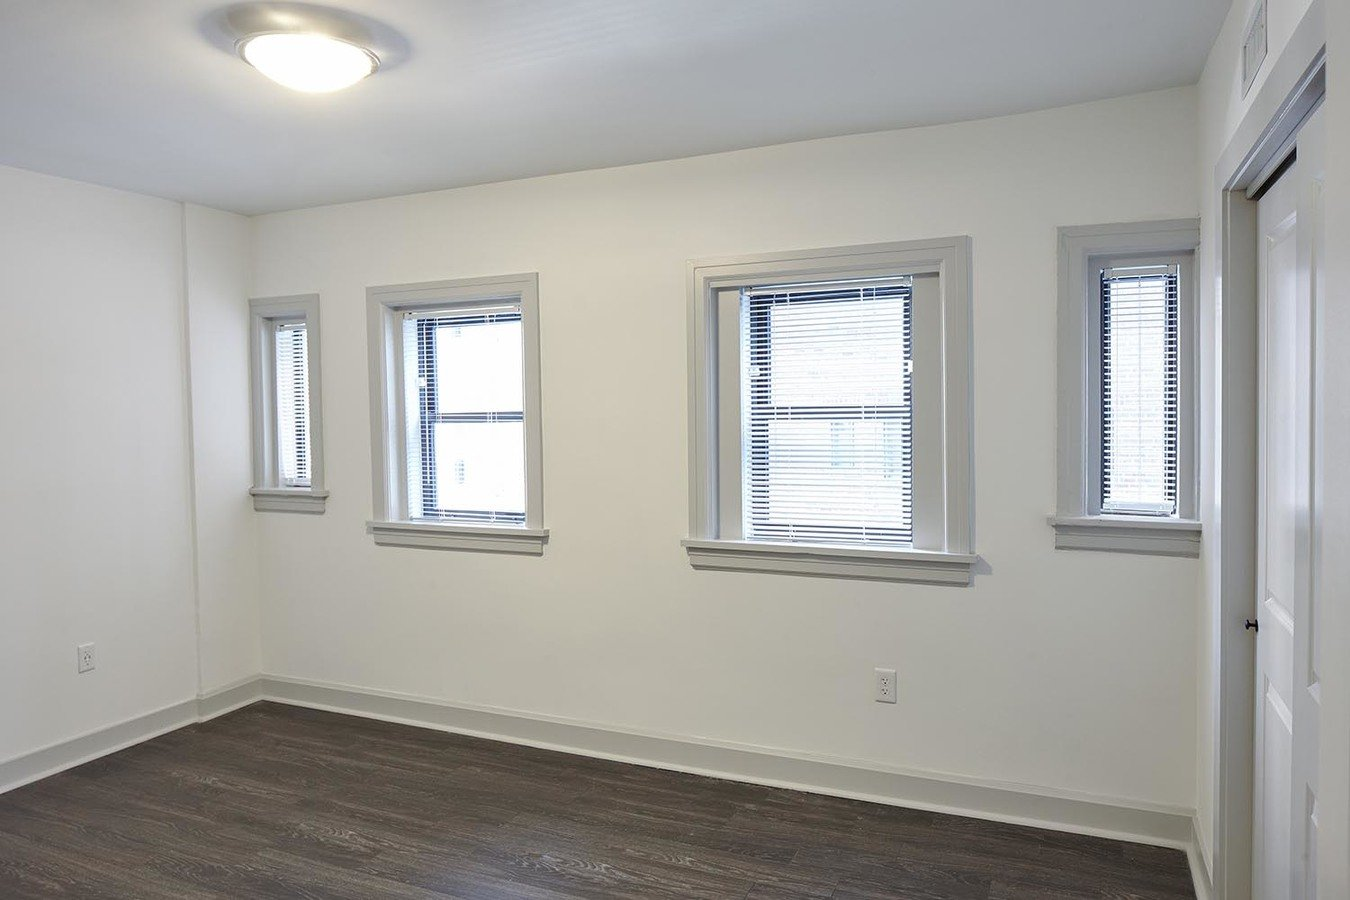 1 Bedroom 1 Bathroom Apartment for rent at The Newbern in Kansas City, MO